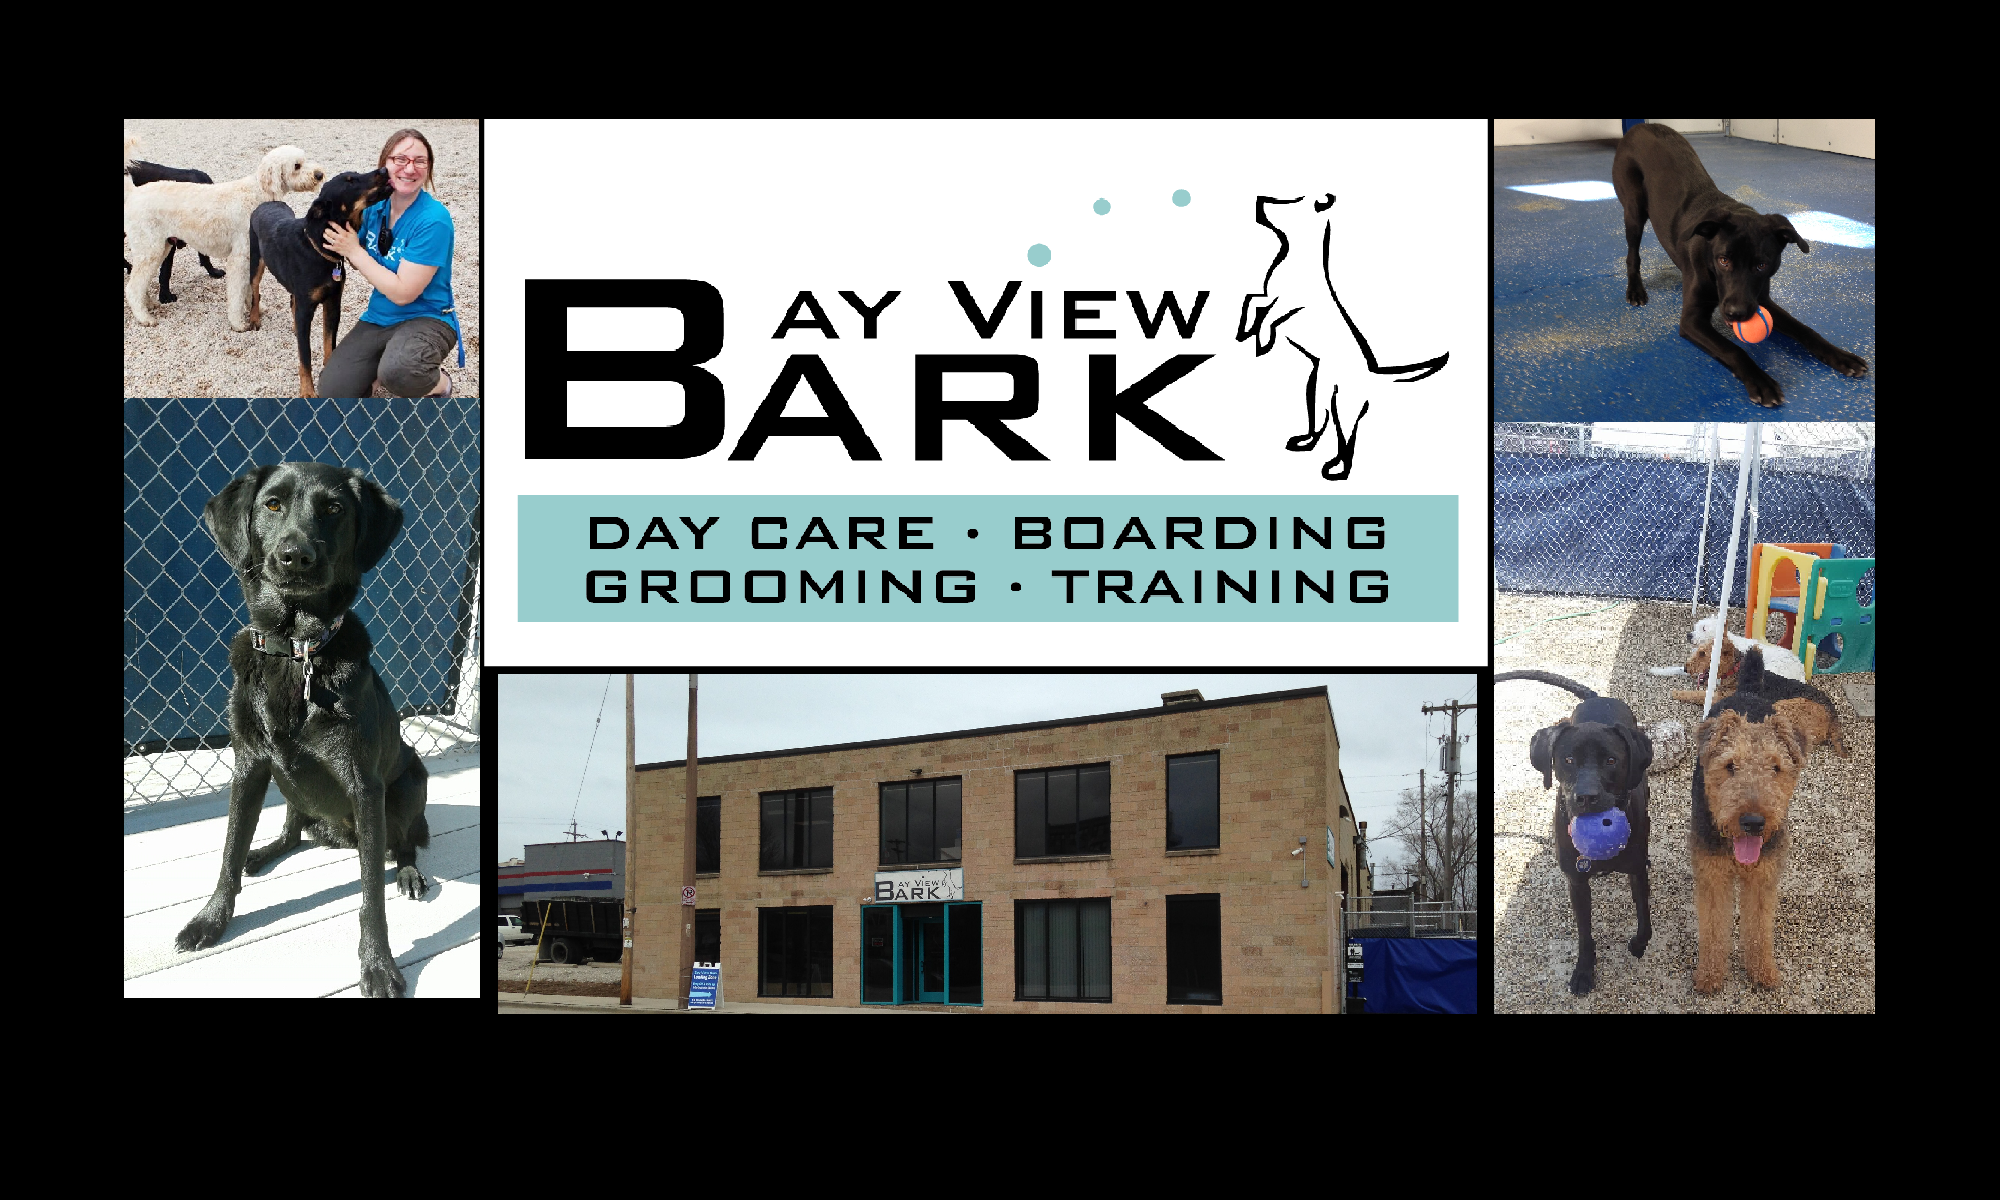 Bay View Bark